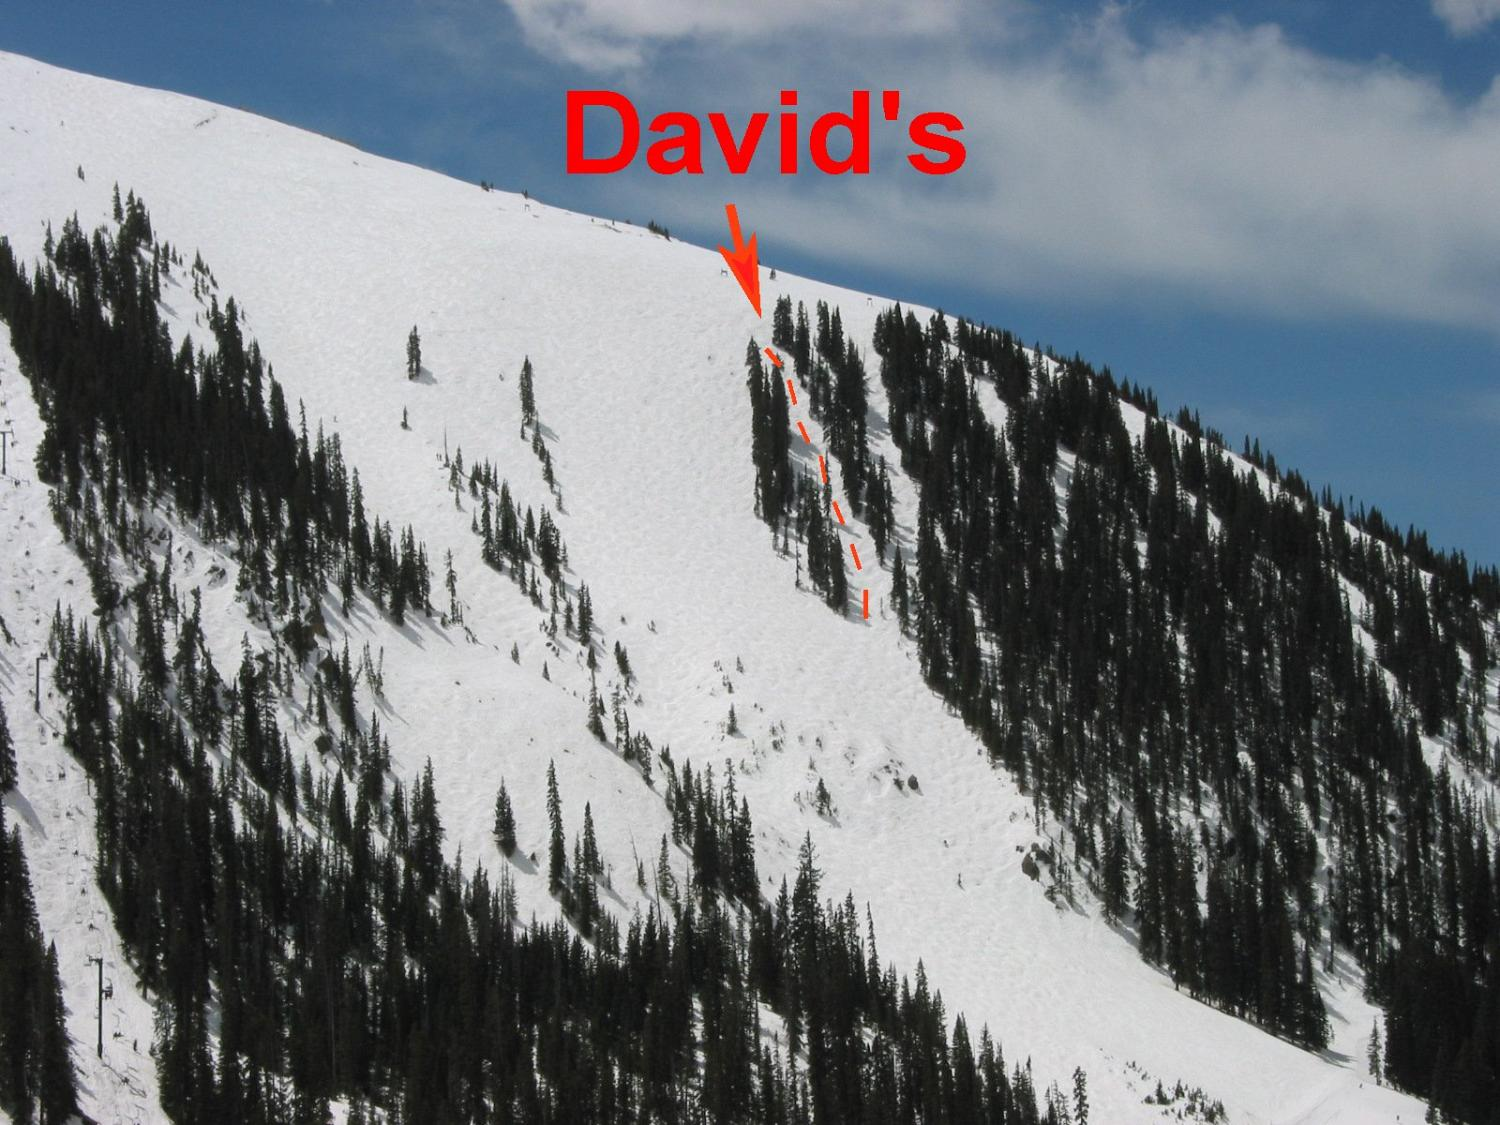 David's is just to the west of Pali Face.